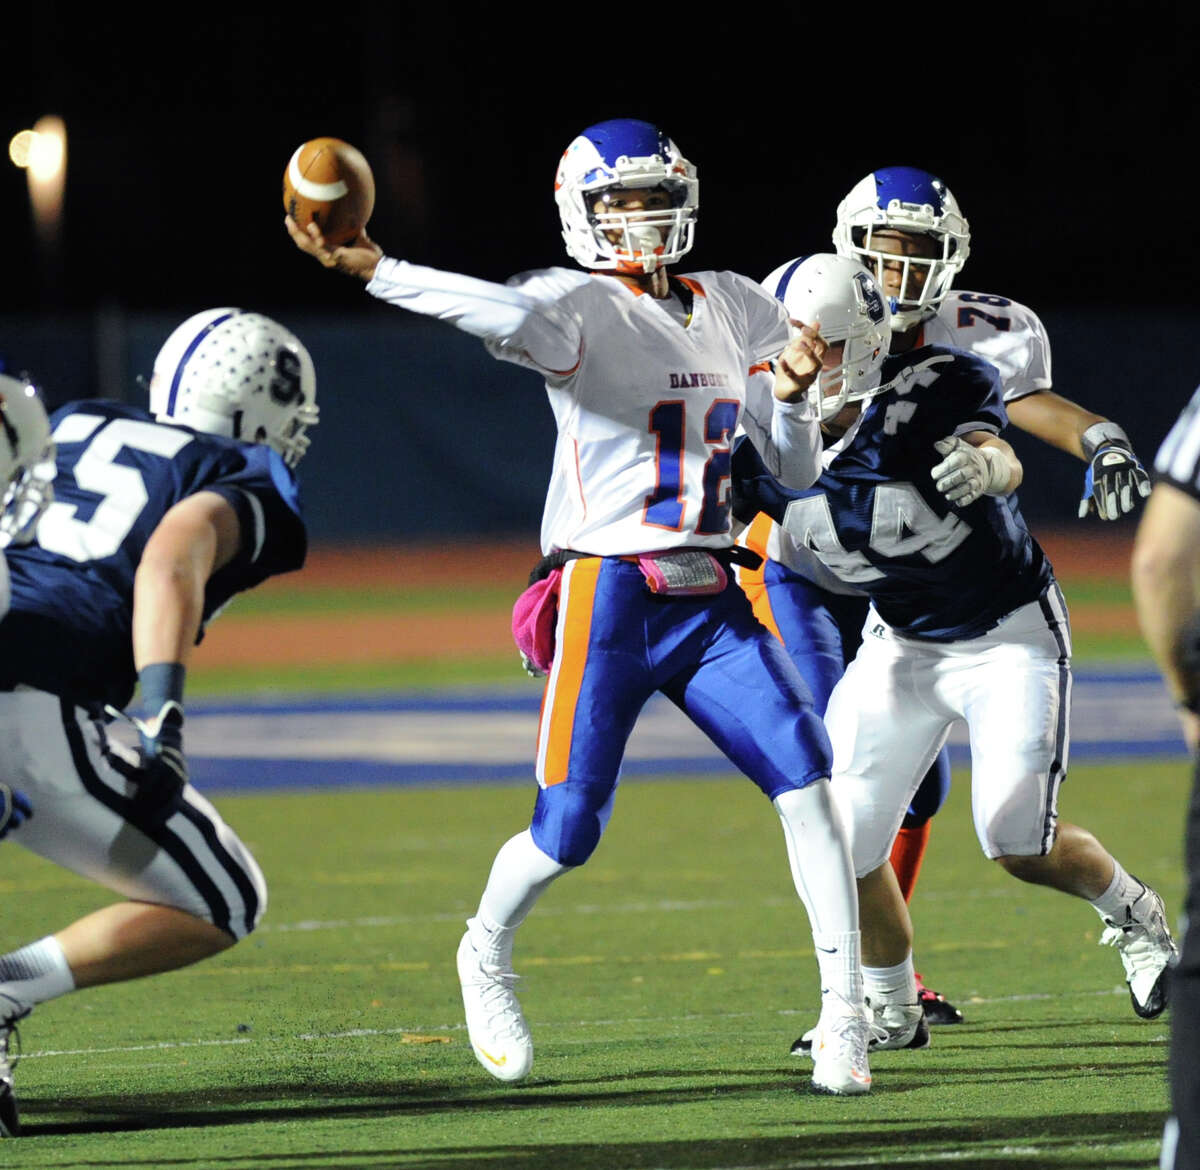 Danbury quarterback Anferny Ith (# 12) throws a first quarter touchdown pass while being pressured by Staples defenders Ian Burns (# 55), at left, and Austin Nicklas (# 44), at right, during the high school football game between Staples High School and Danbury High School at Staples in Westport, Friday, Oct. 18, 2013.